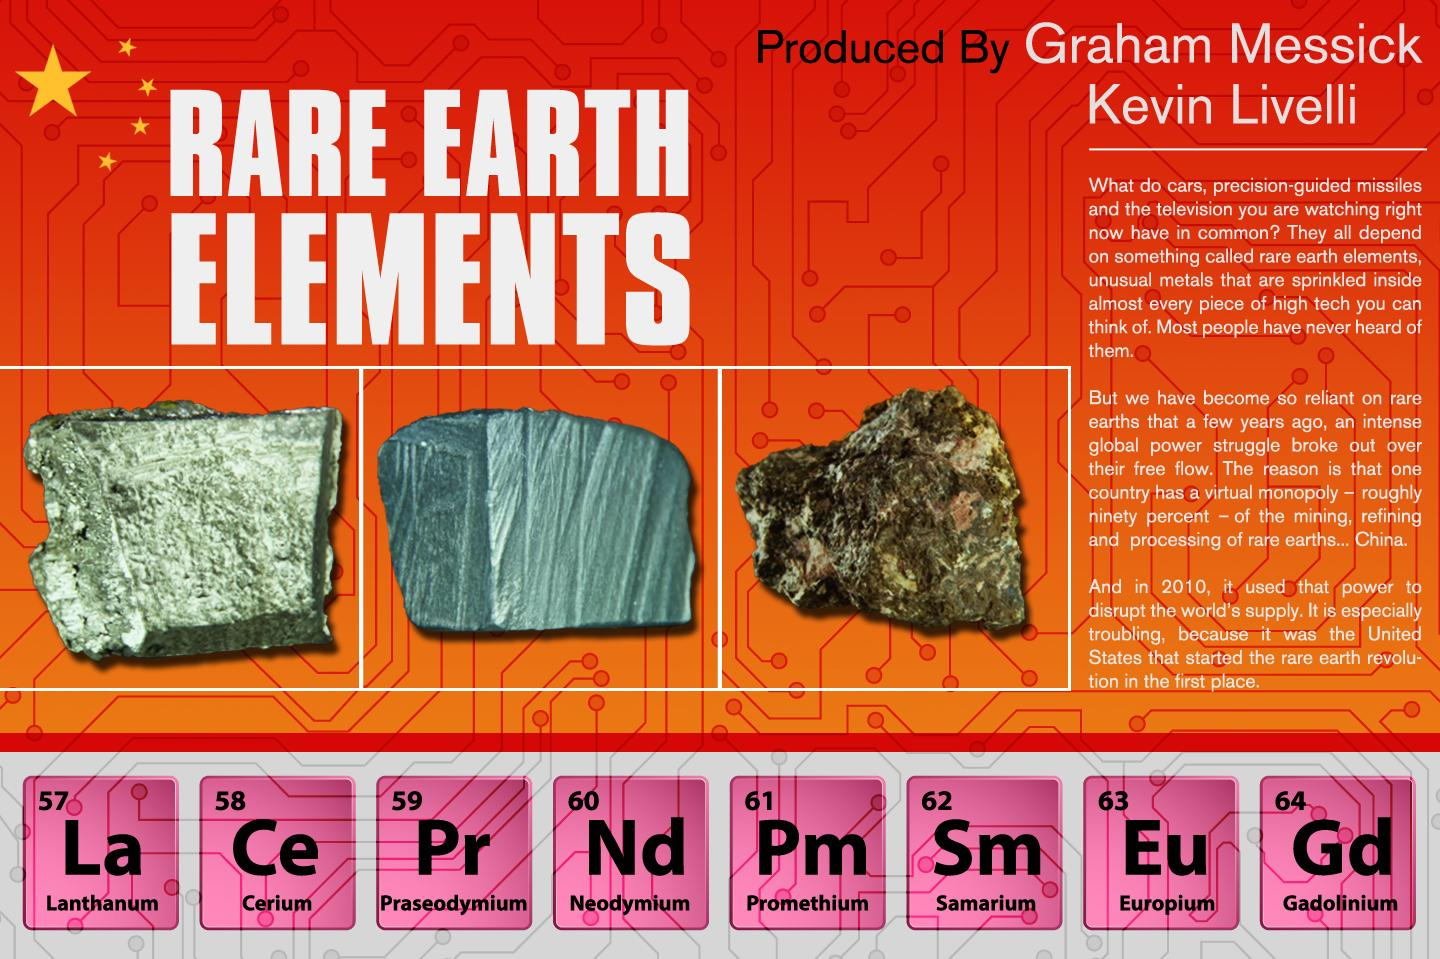 "rare earth elements ""separation of rare earth elements"" commemorative booklet produced by the national historic chemical landmarks program of the american chemical society."